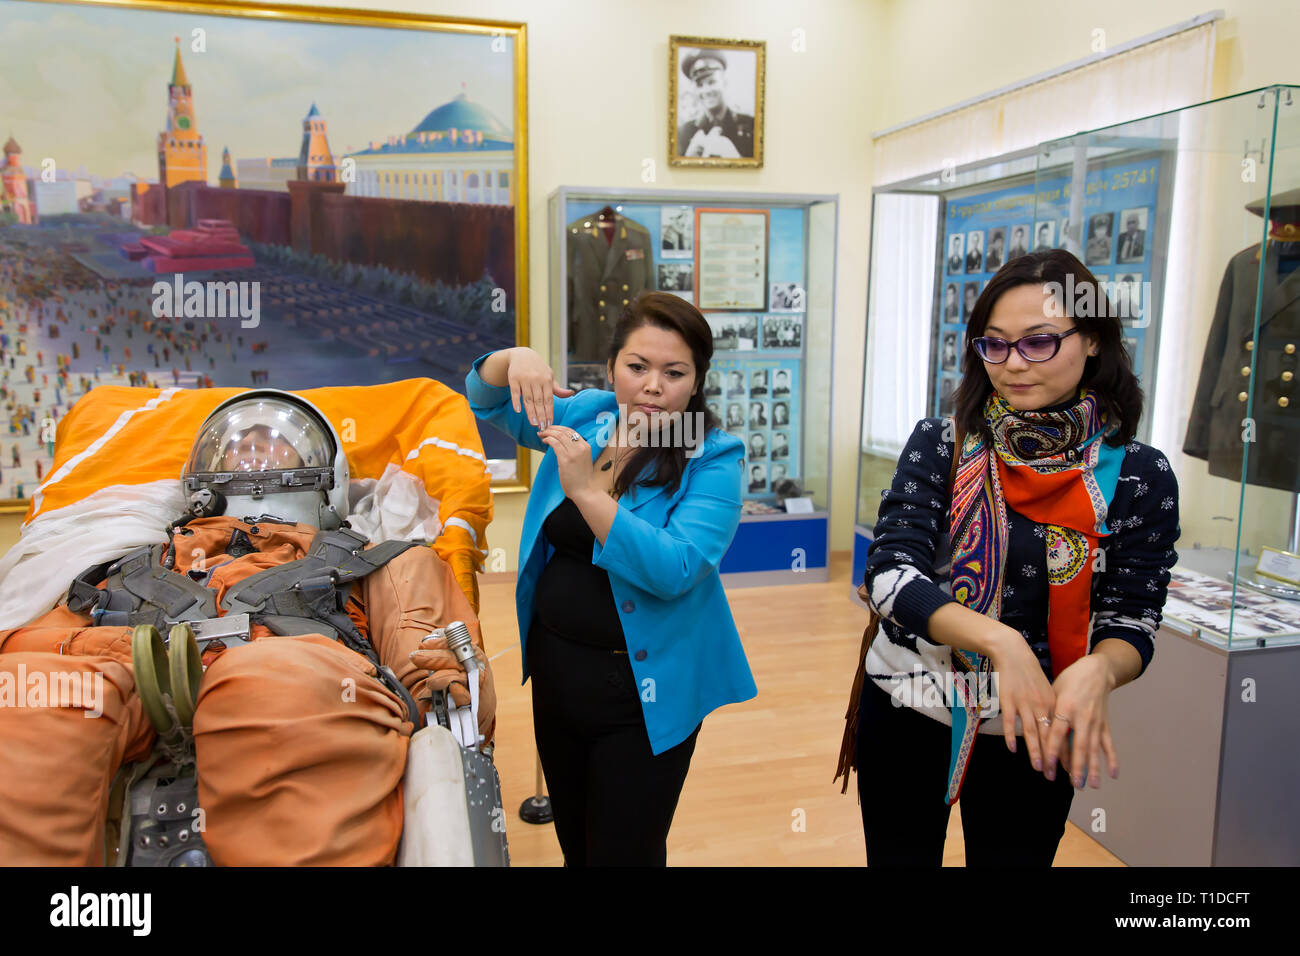 BAIKONUR - Kazakh museum and tour guides explain the working of an ejection seat of the Vostok spacecraft in the Cosmodrome museum. - Stock Image